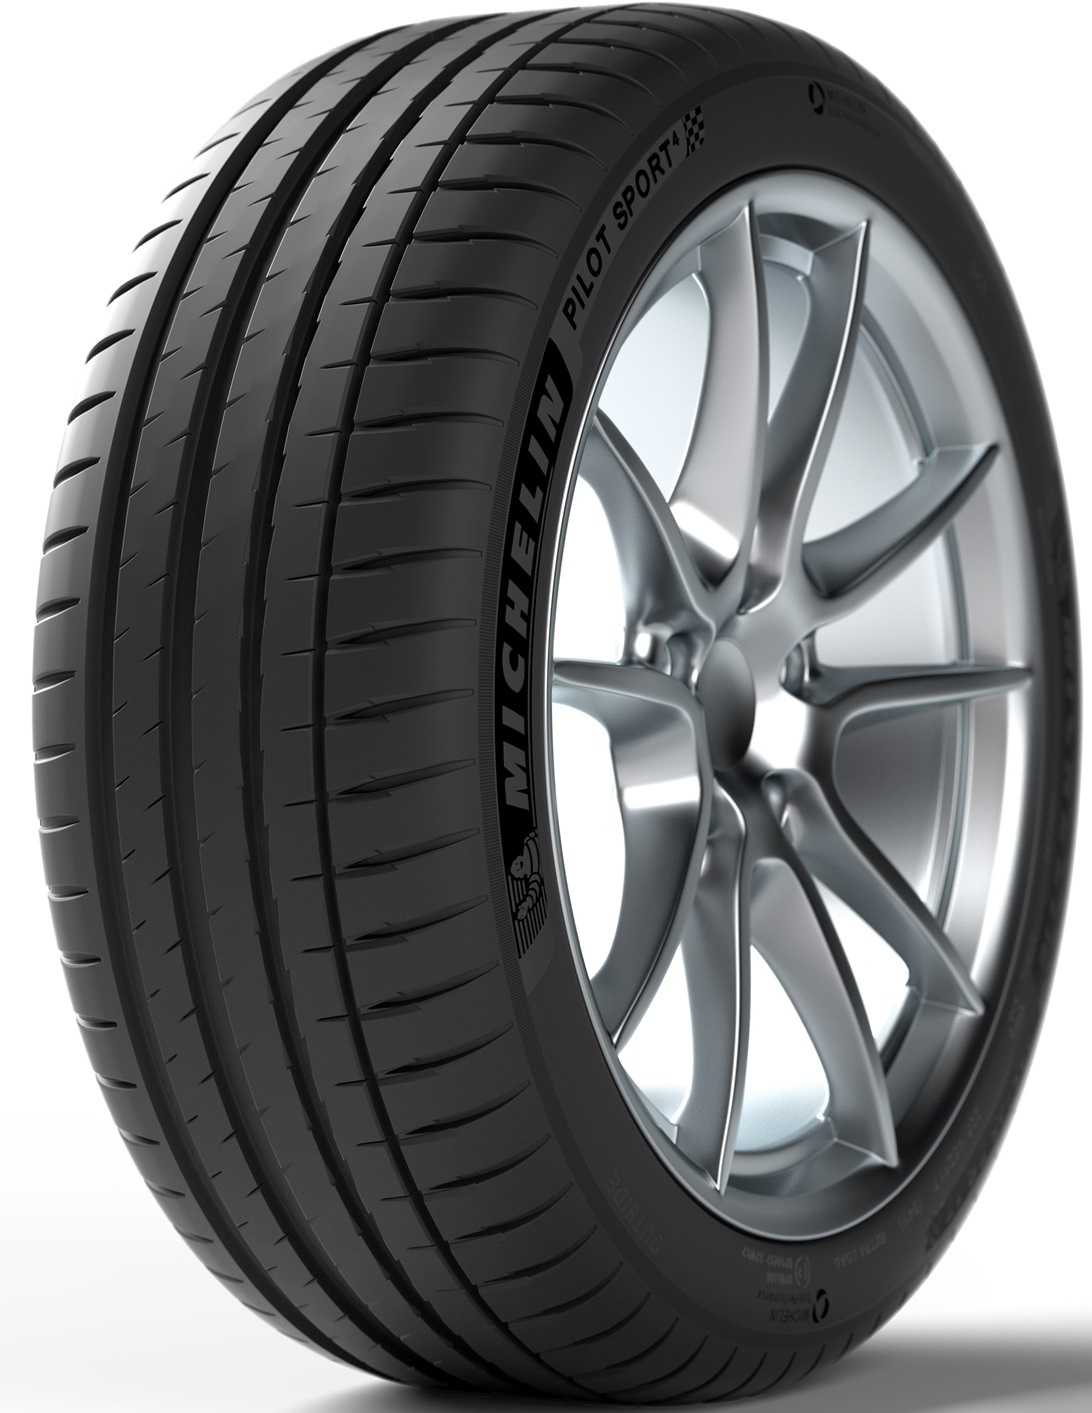 Michelin Pilot Sport 4 225/50 ZR17 98W XL